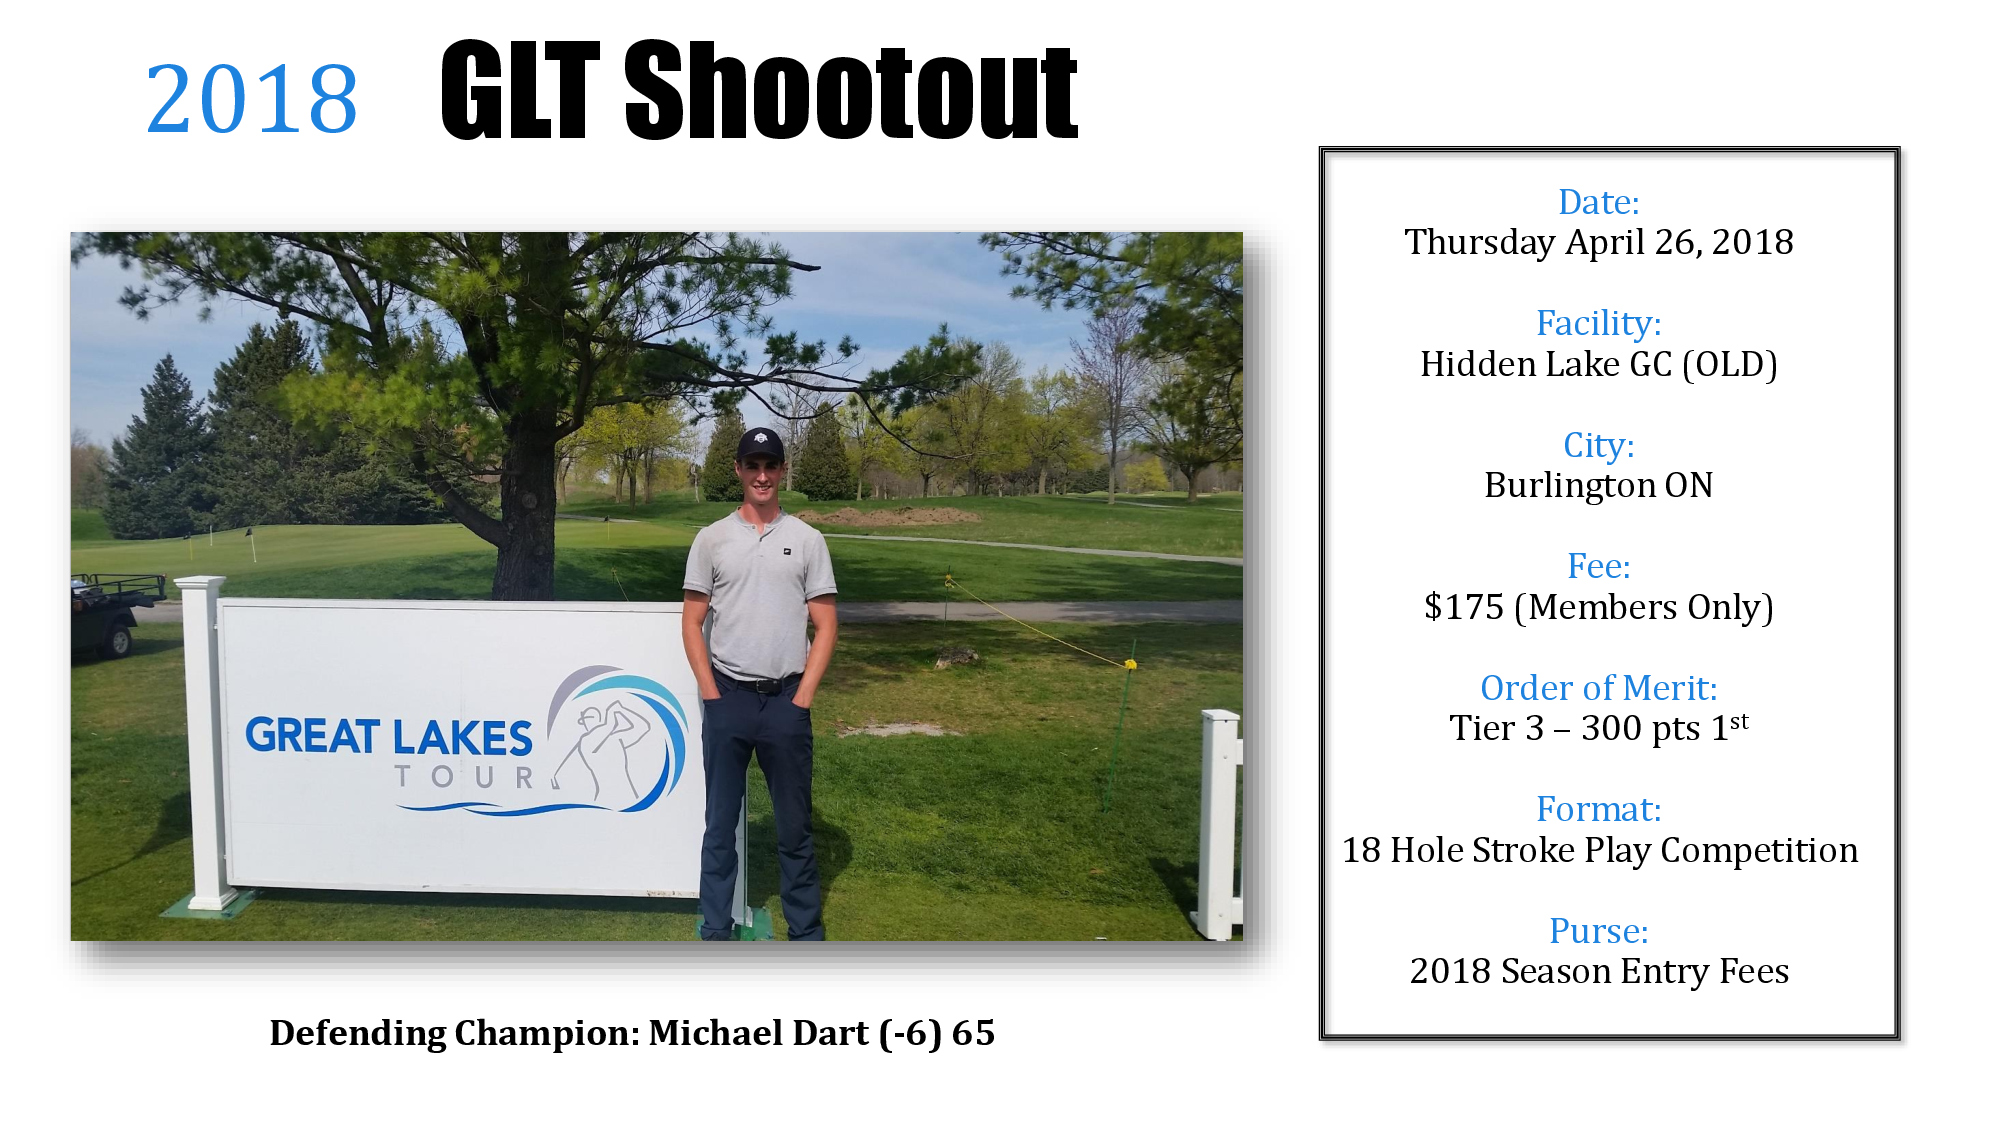 Glt shootout 1